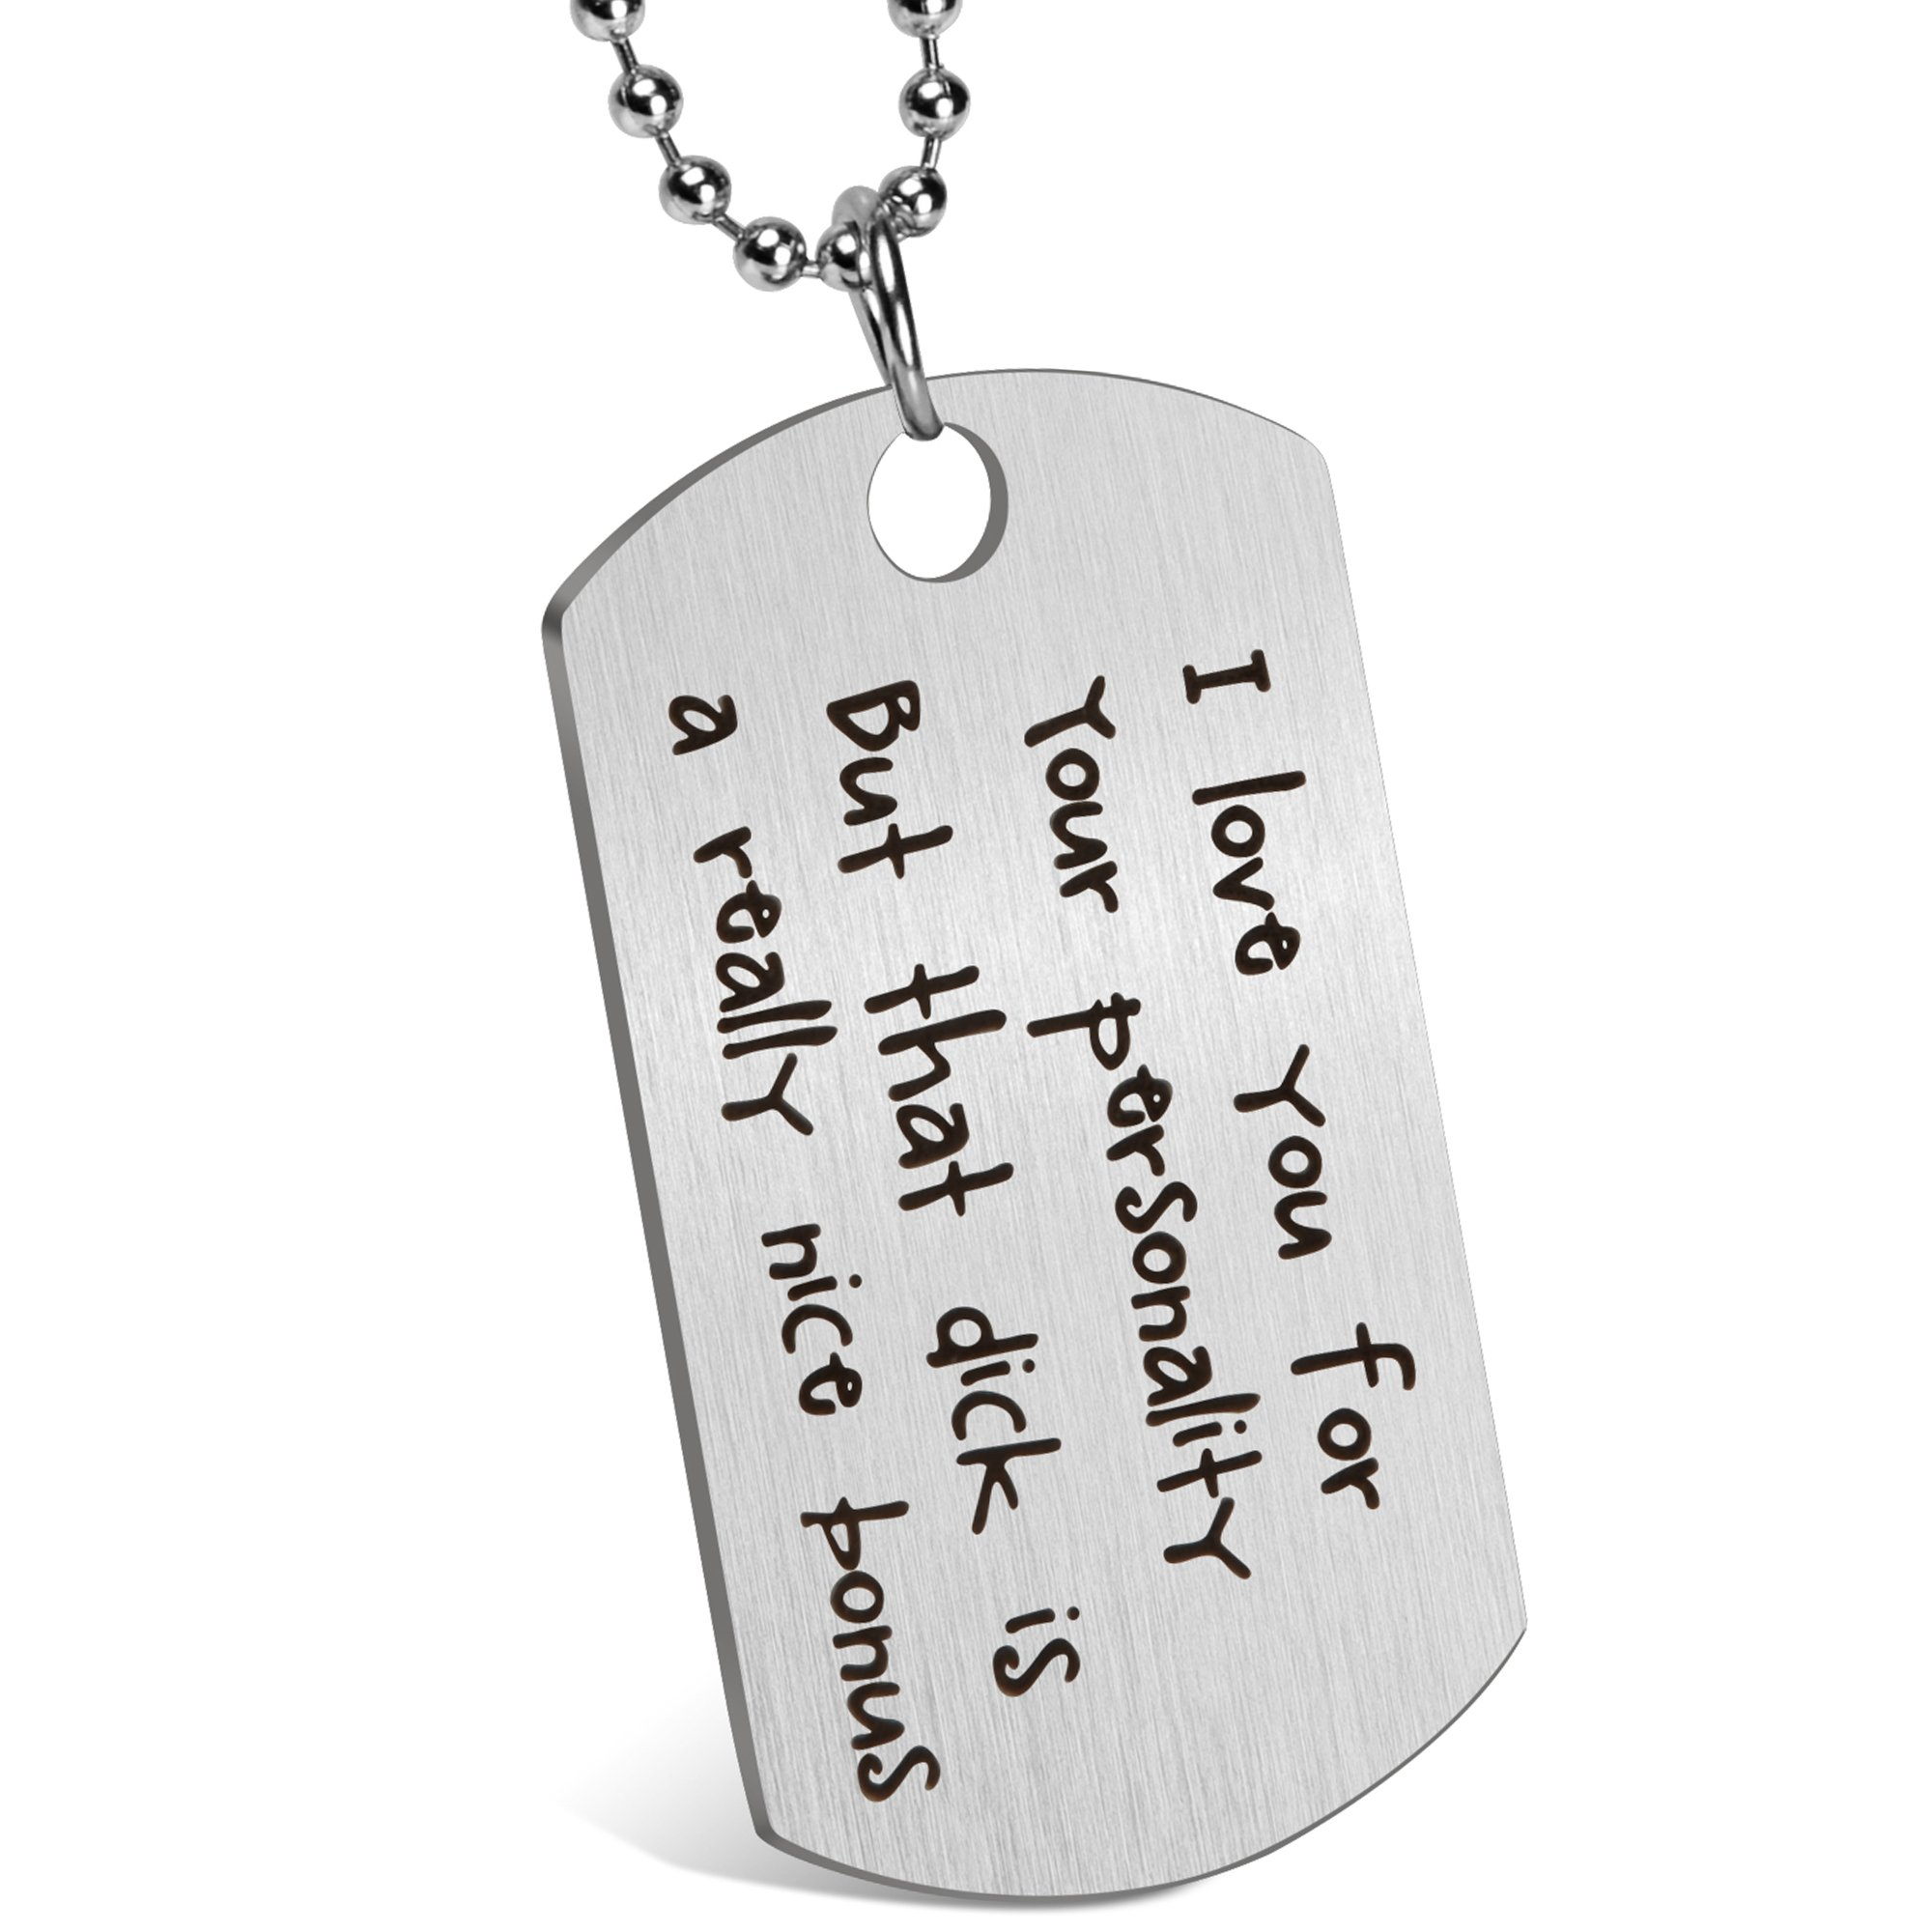 Gift for Boyfriend Husband Personalized Dating Whisper Dog Tag Necklace Pendant Naughty Words Jewelry Couples Keychain Gift for Valentine's Day Anniversary (♥I'm serious)